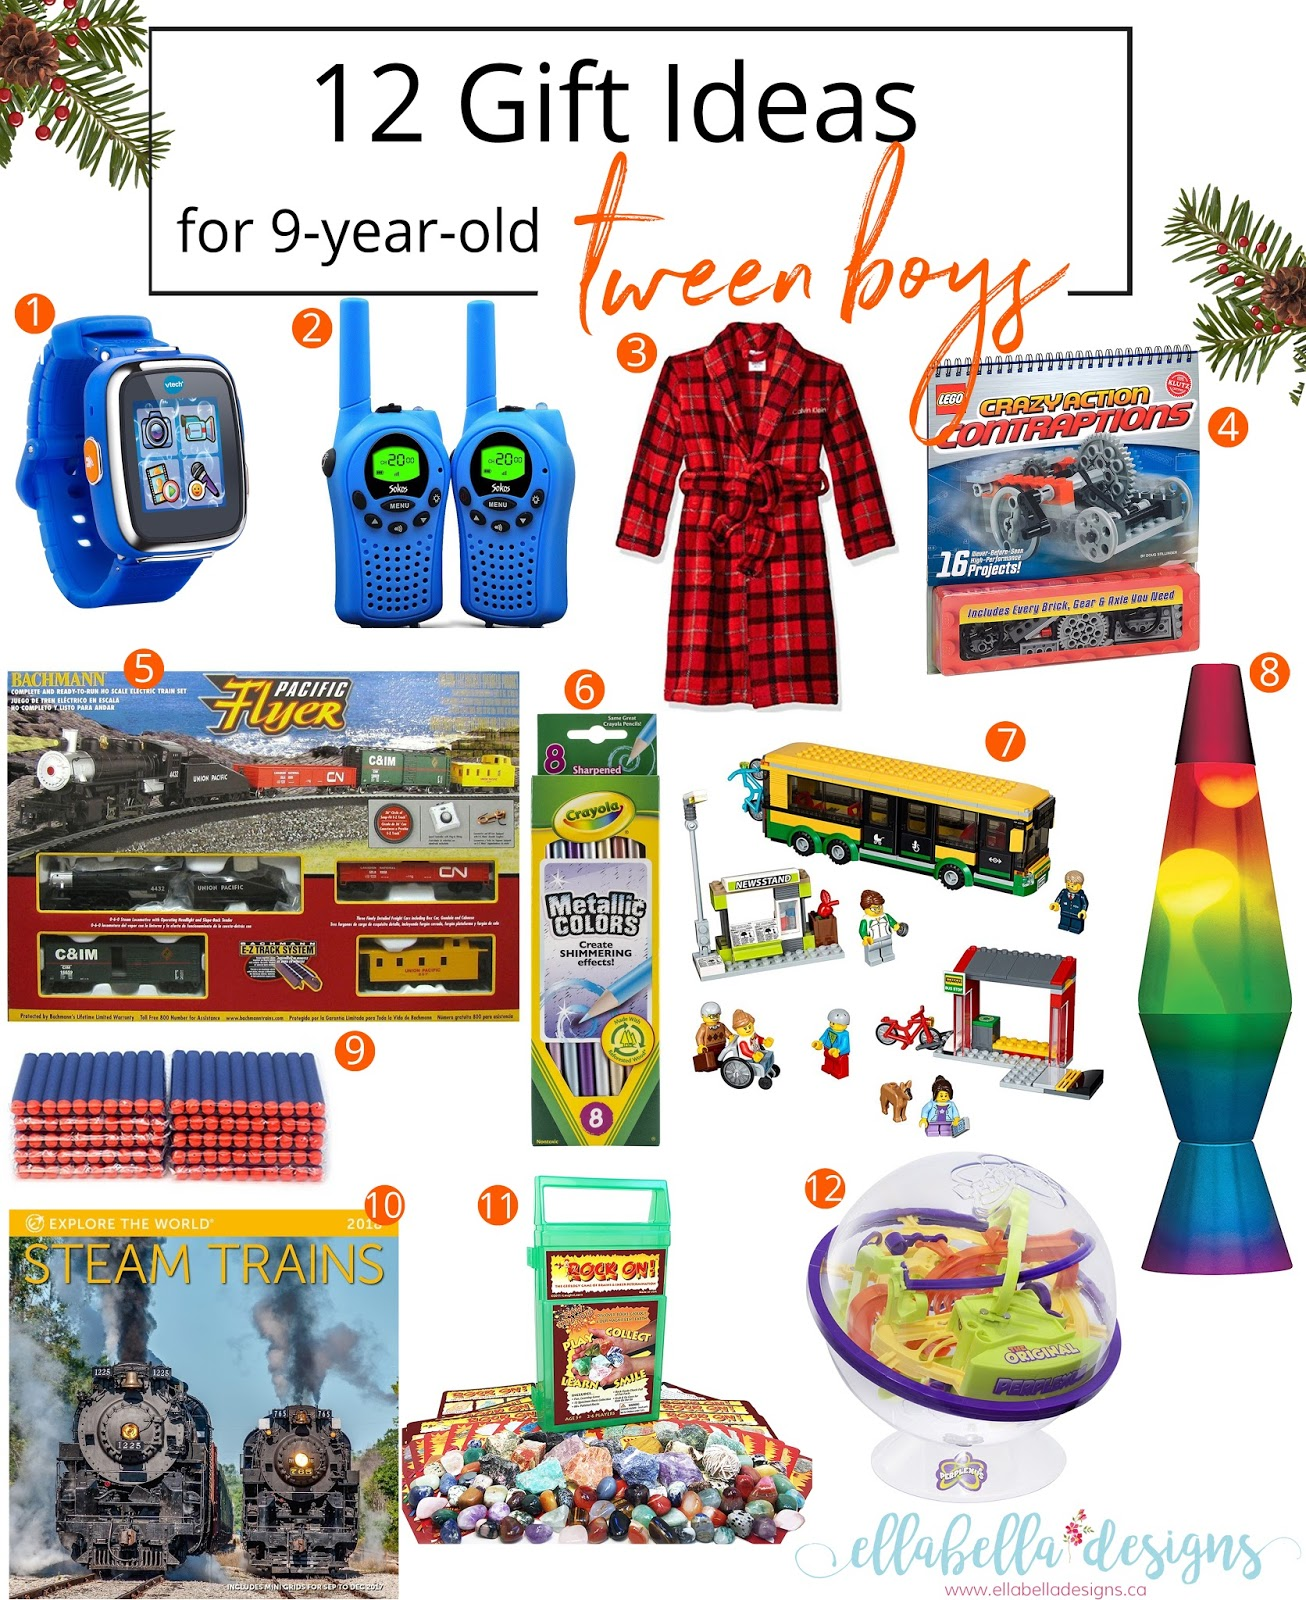 ellabella designs: 12 gift ideas for 9-year-old tween boys gift guide